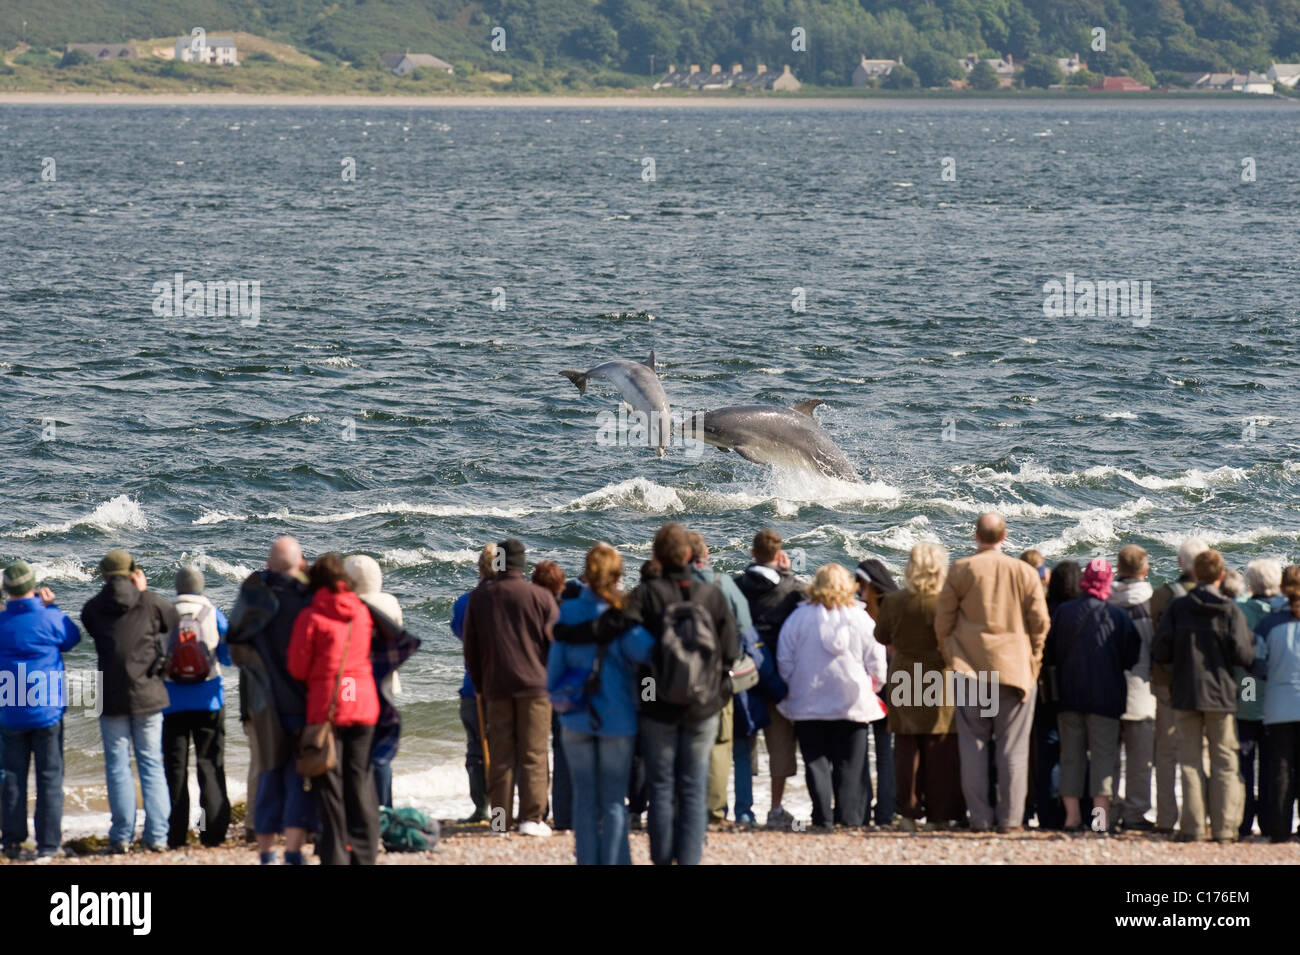 Bottlenose dolphin (Tursiops truncatus) , Moray firth, Scotland, UK. People watching from shore at Chanonry Point - Stock Image